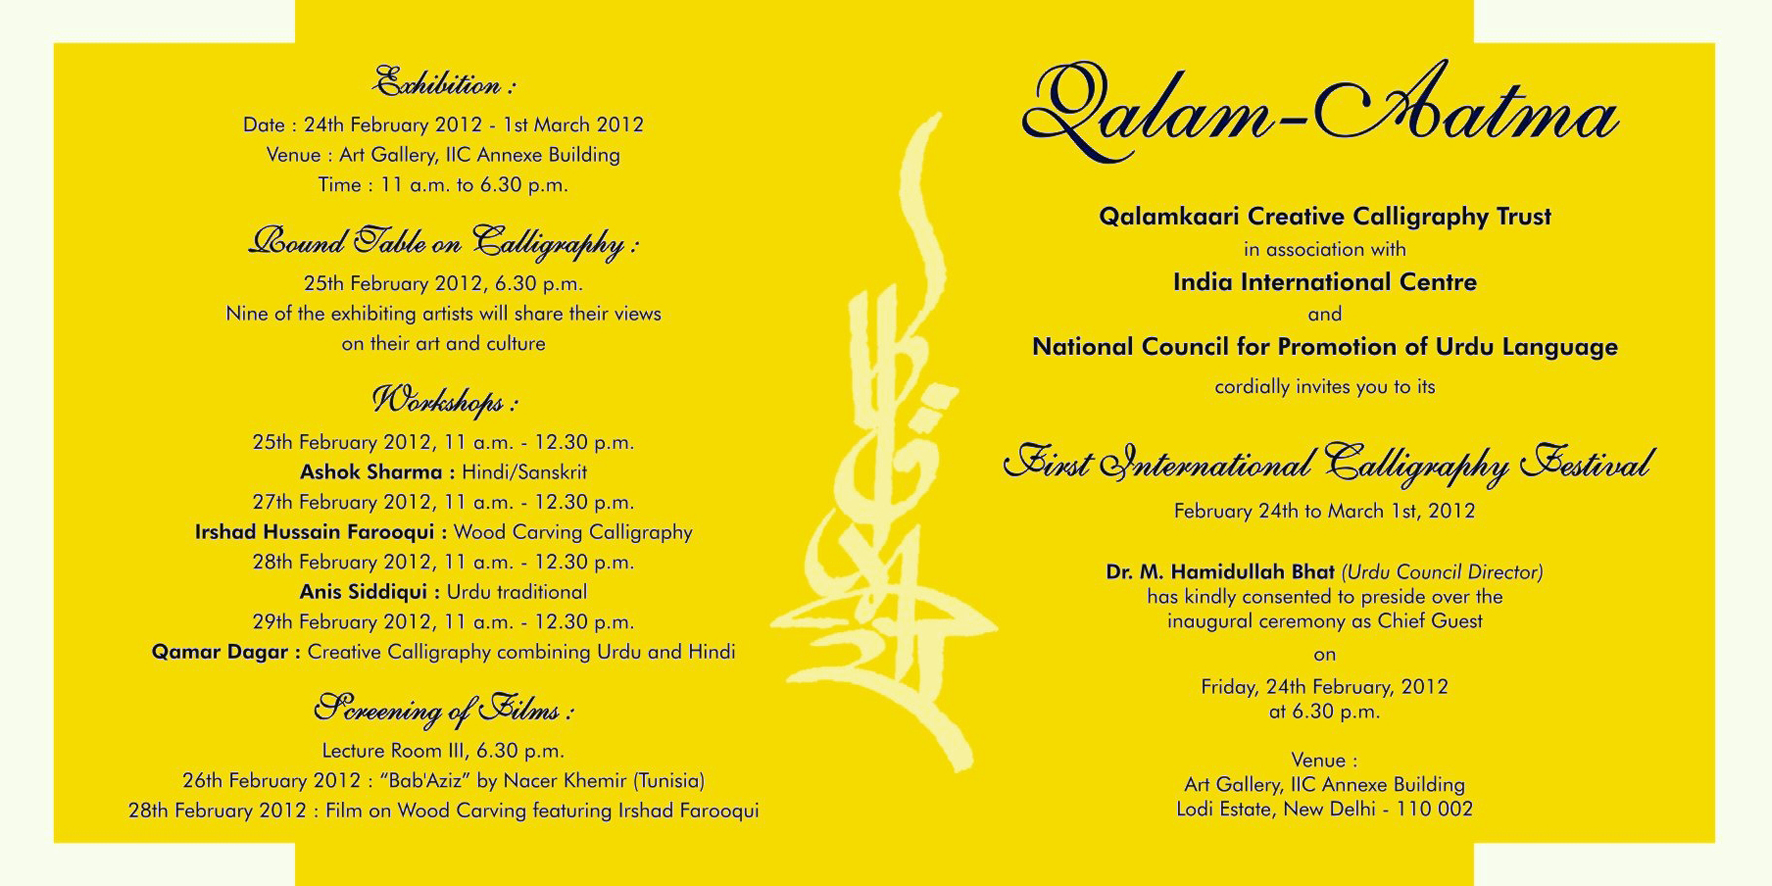 1st International Calligraphy Festival Invite and Program